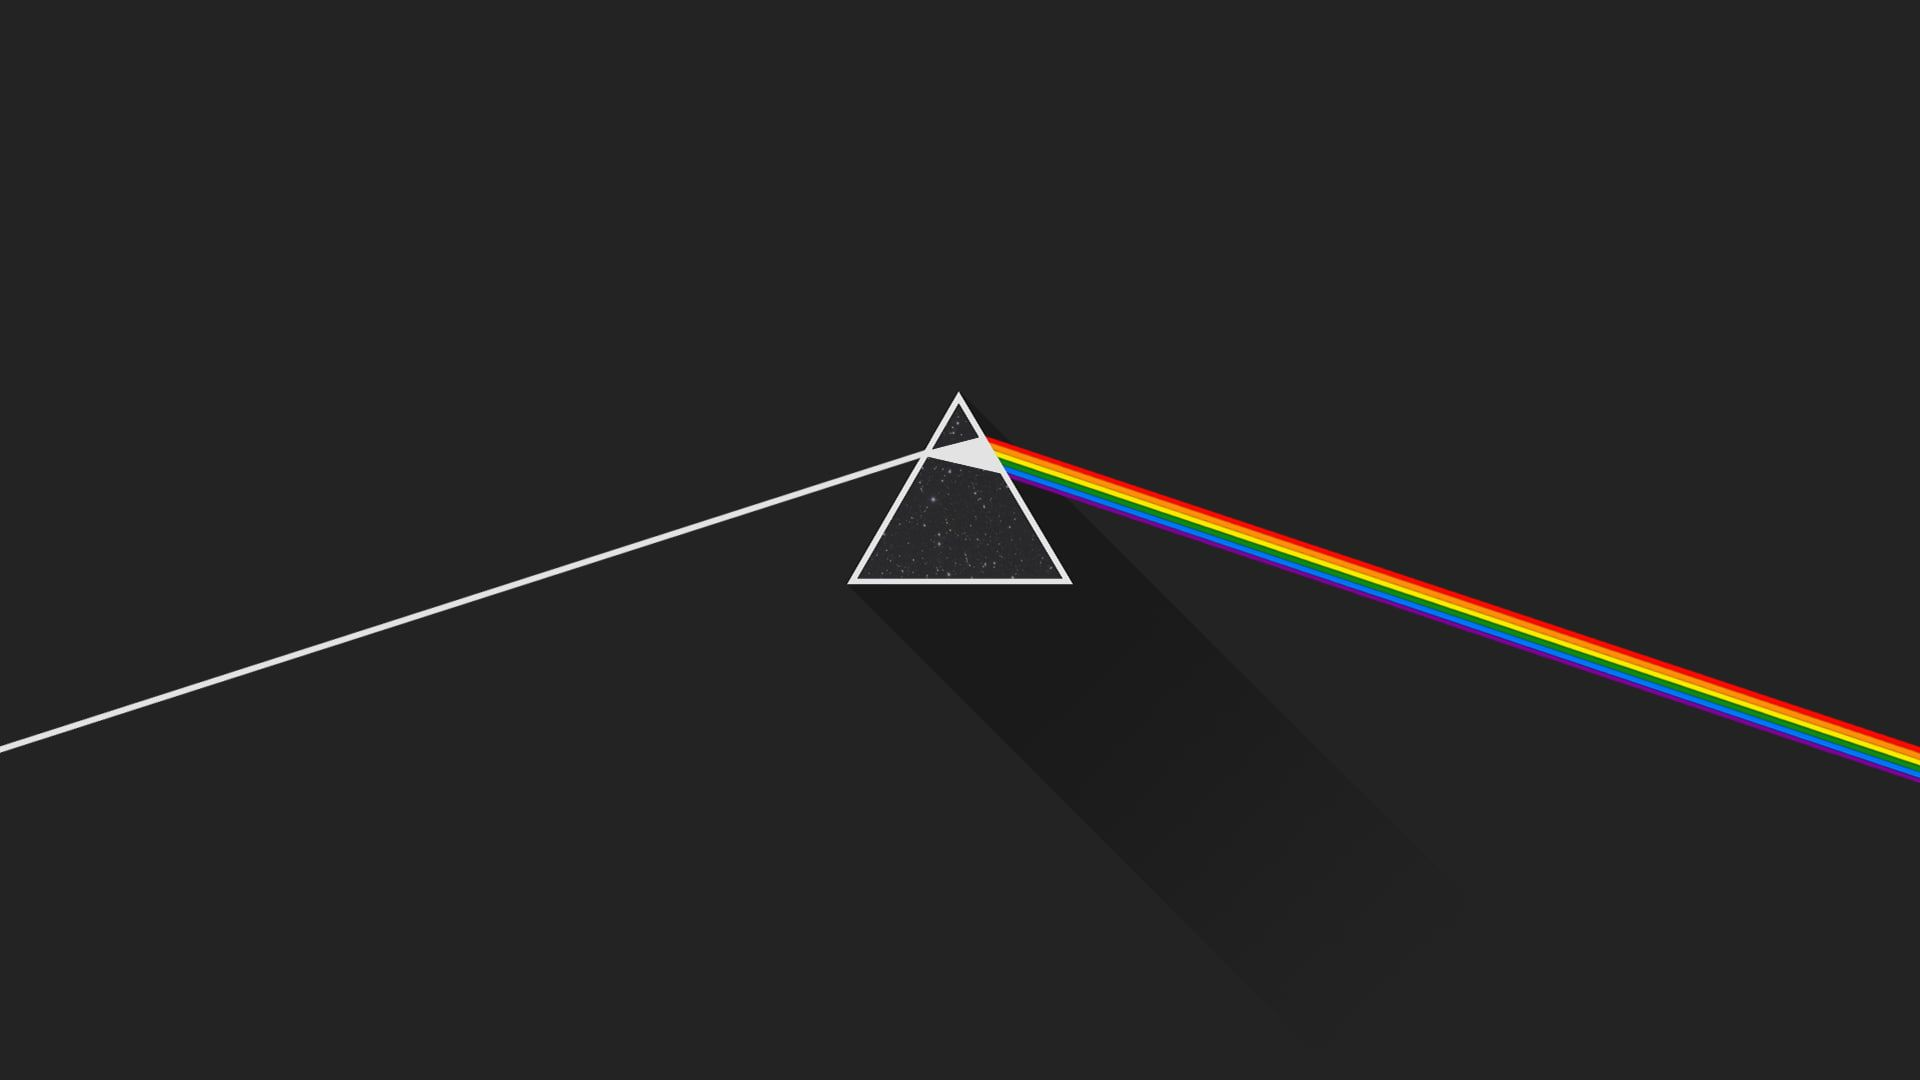 Wallpaper Pink Floyd The Dark Side Of The Moon Triangle Shape Multi Colored Pink Floyd Wallpaper Pink Floyd Background Pink Wallpaper Desktop